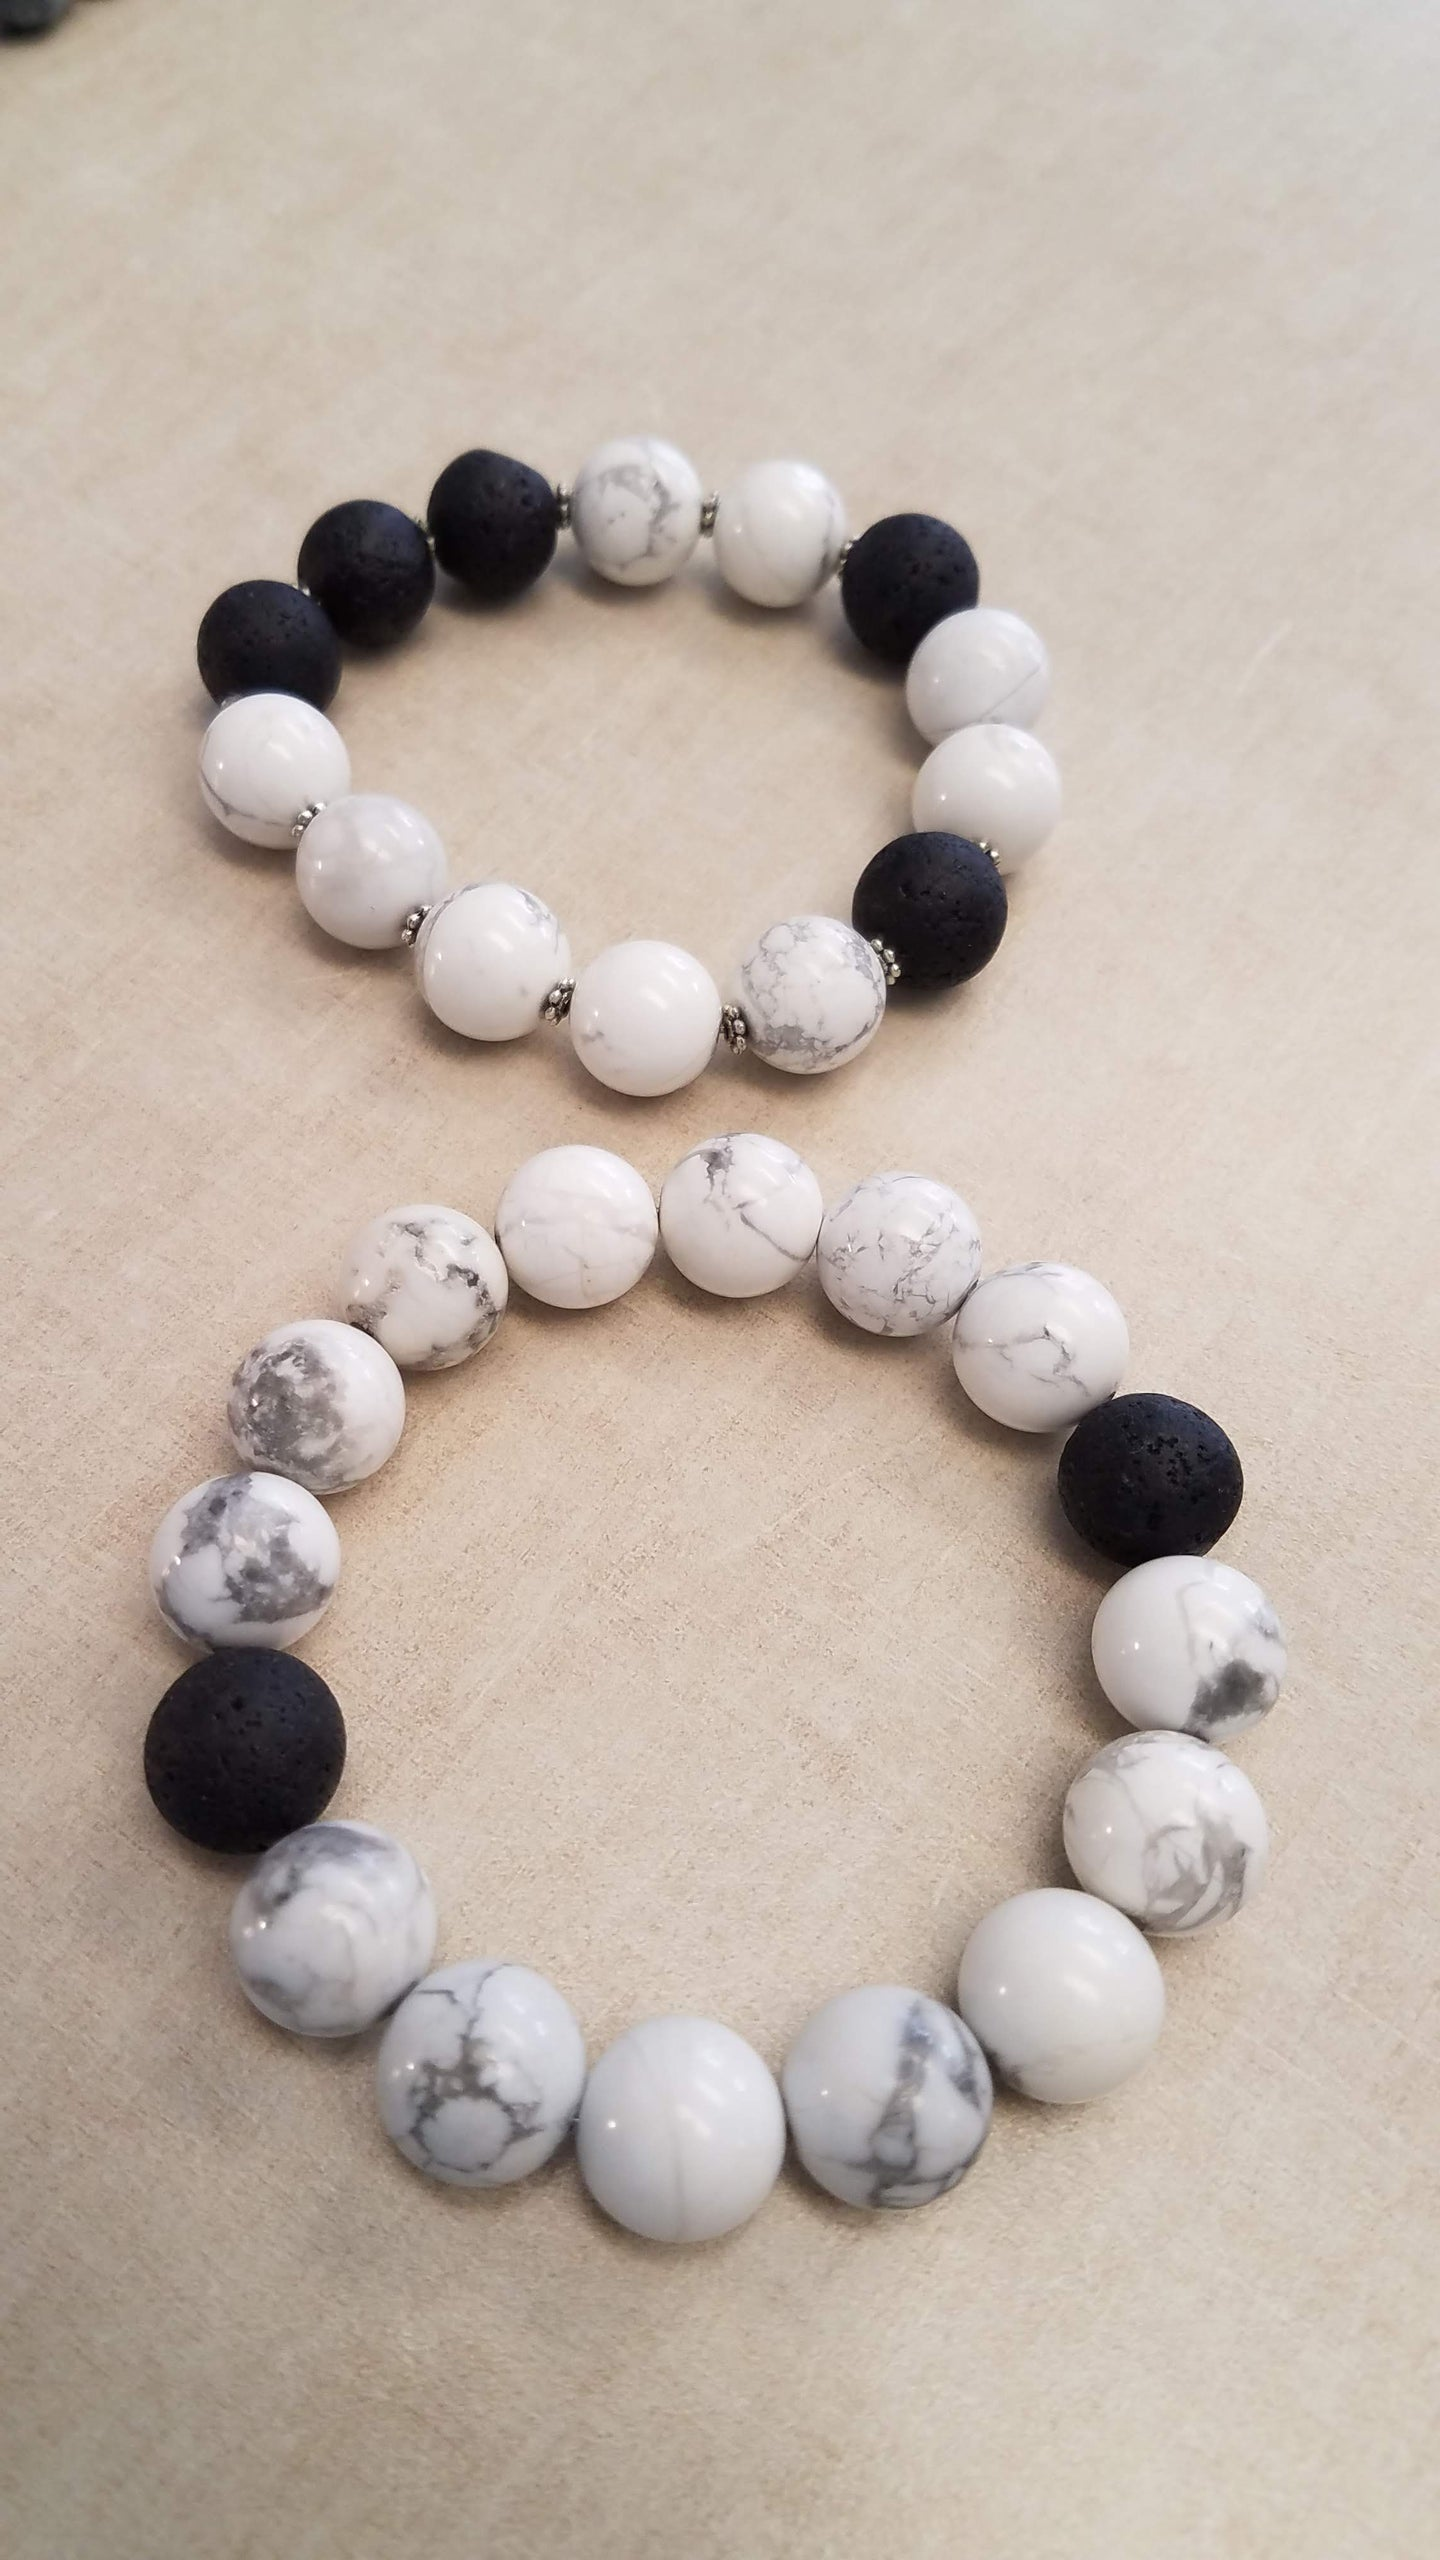 Beaded Infusion Bracelet - White Marble and Black Stones